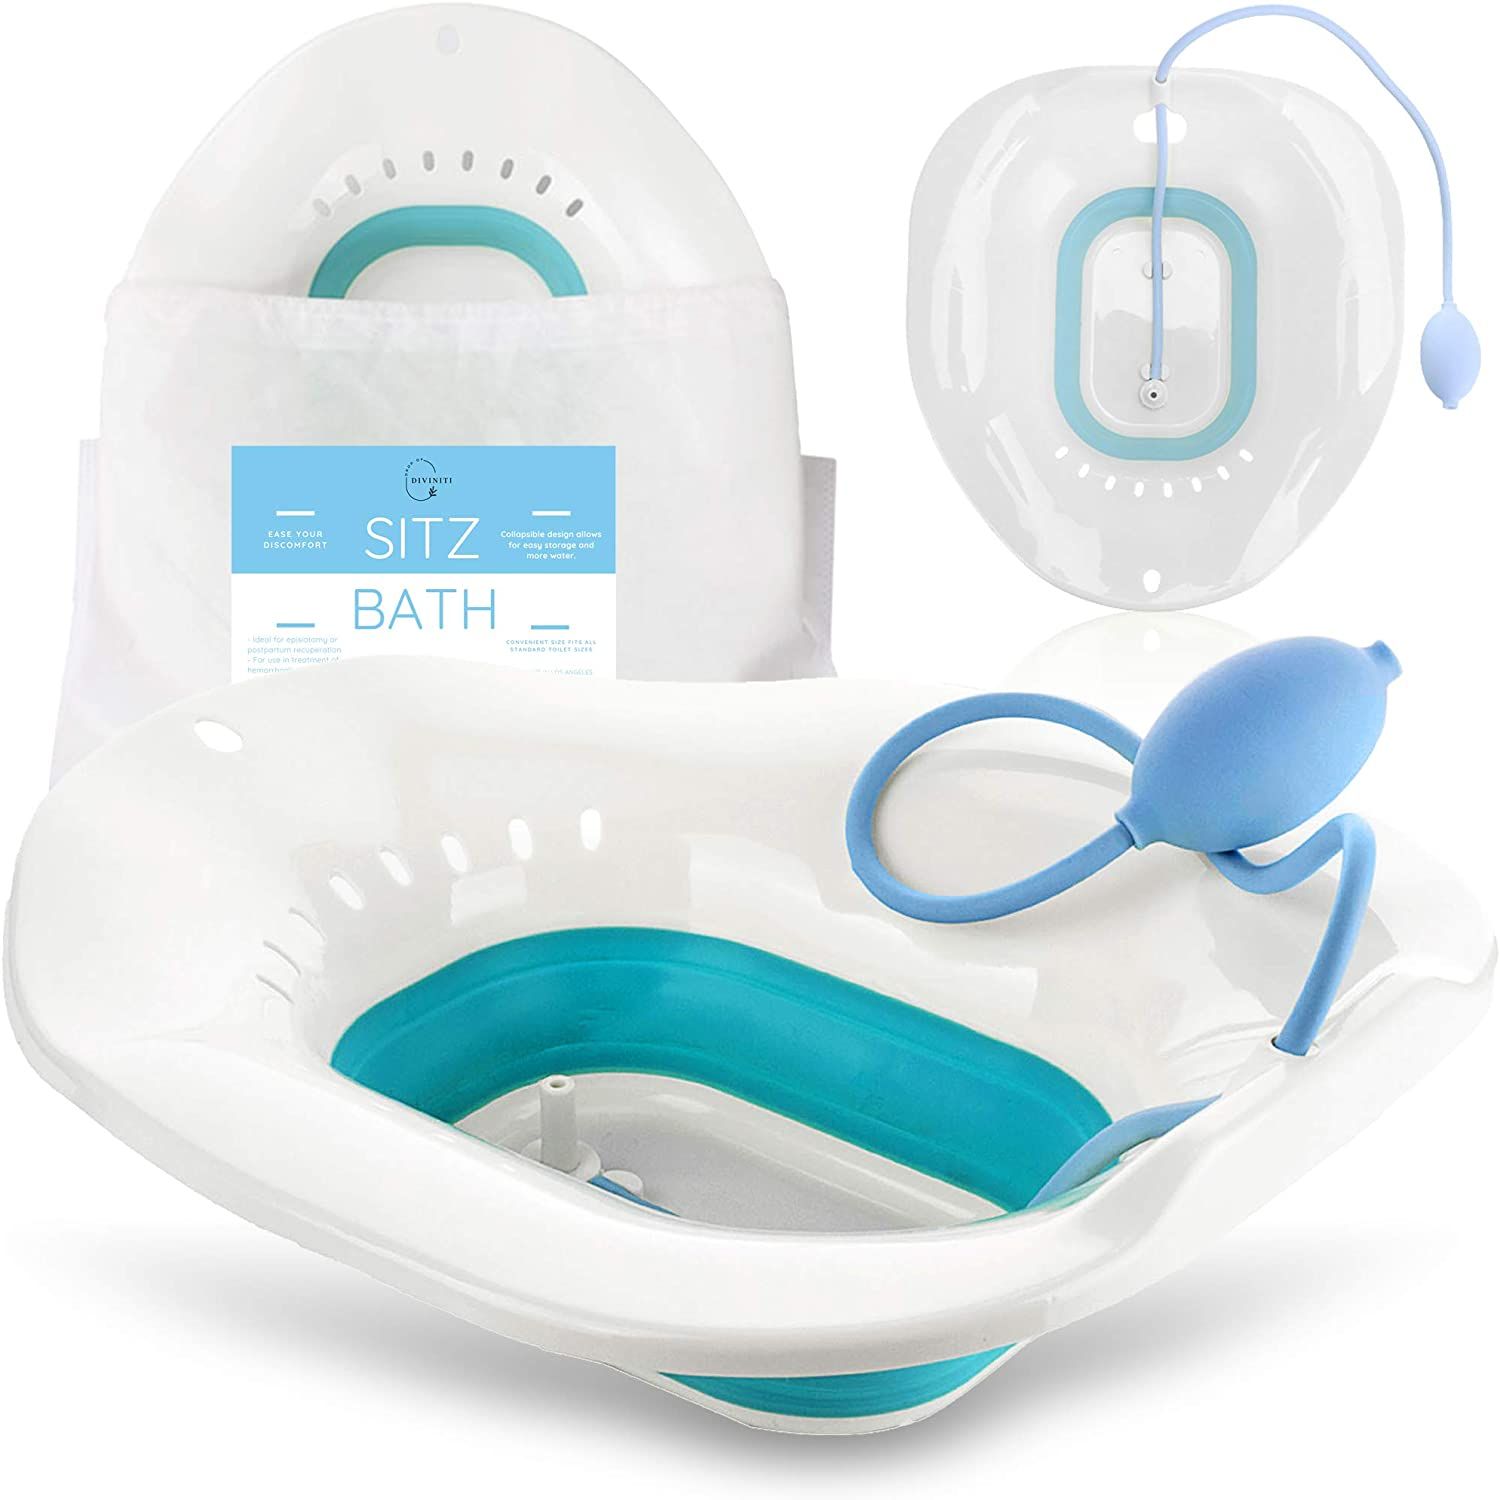 Max 48% OFF Sitz Bath Large special price !! for Toilet Seat Care Postpartum Soothes - Hemorrhoids